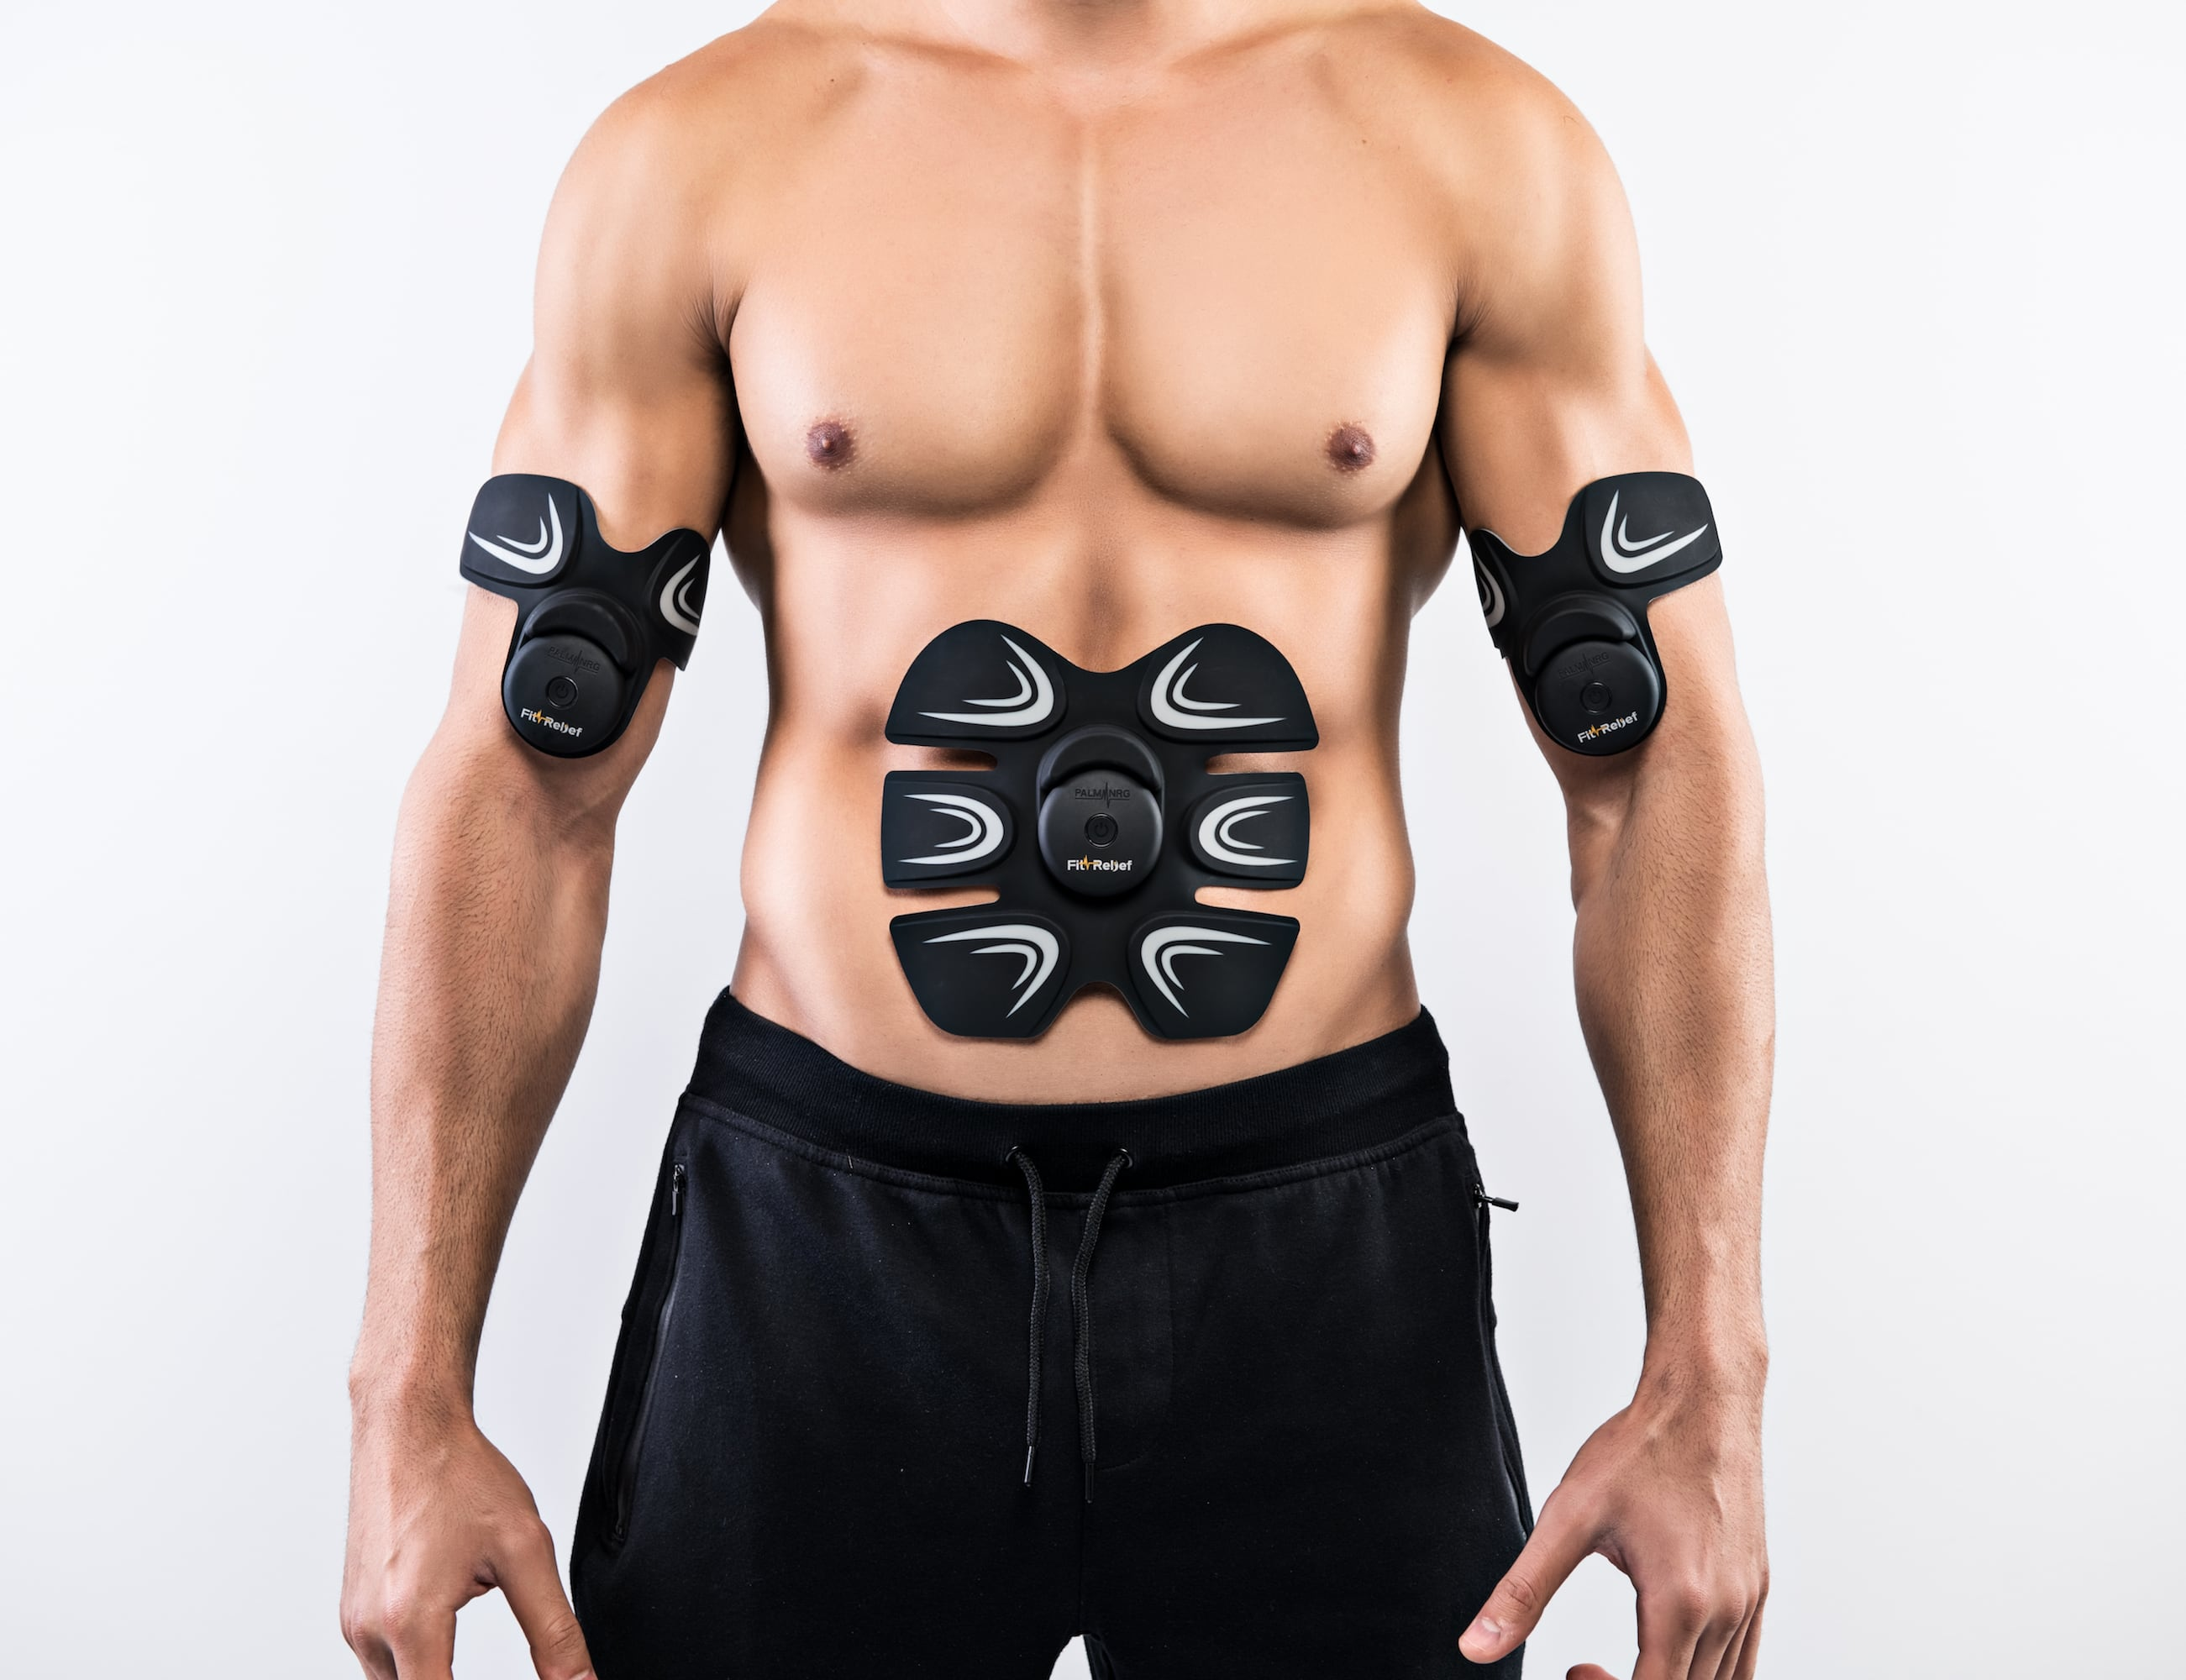 ElectroFit Wearable Smart Fitness Device